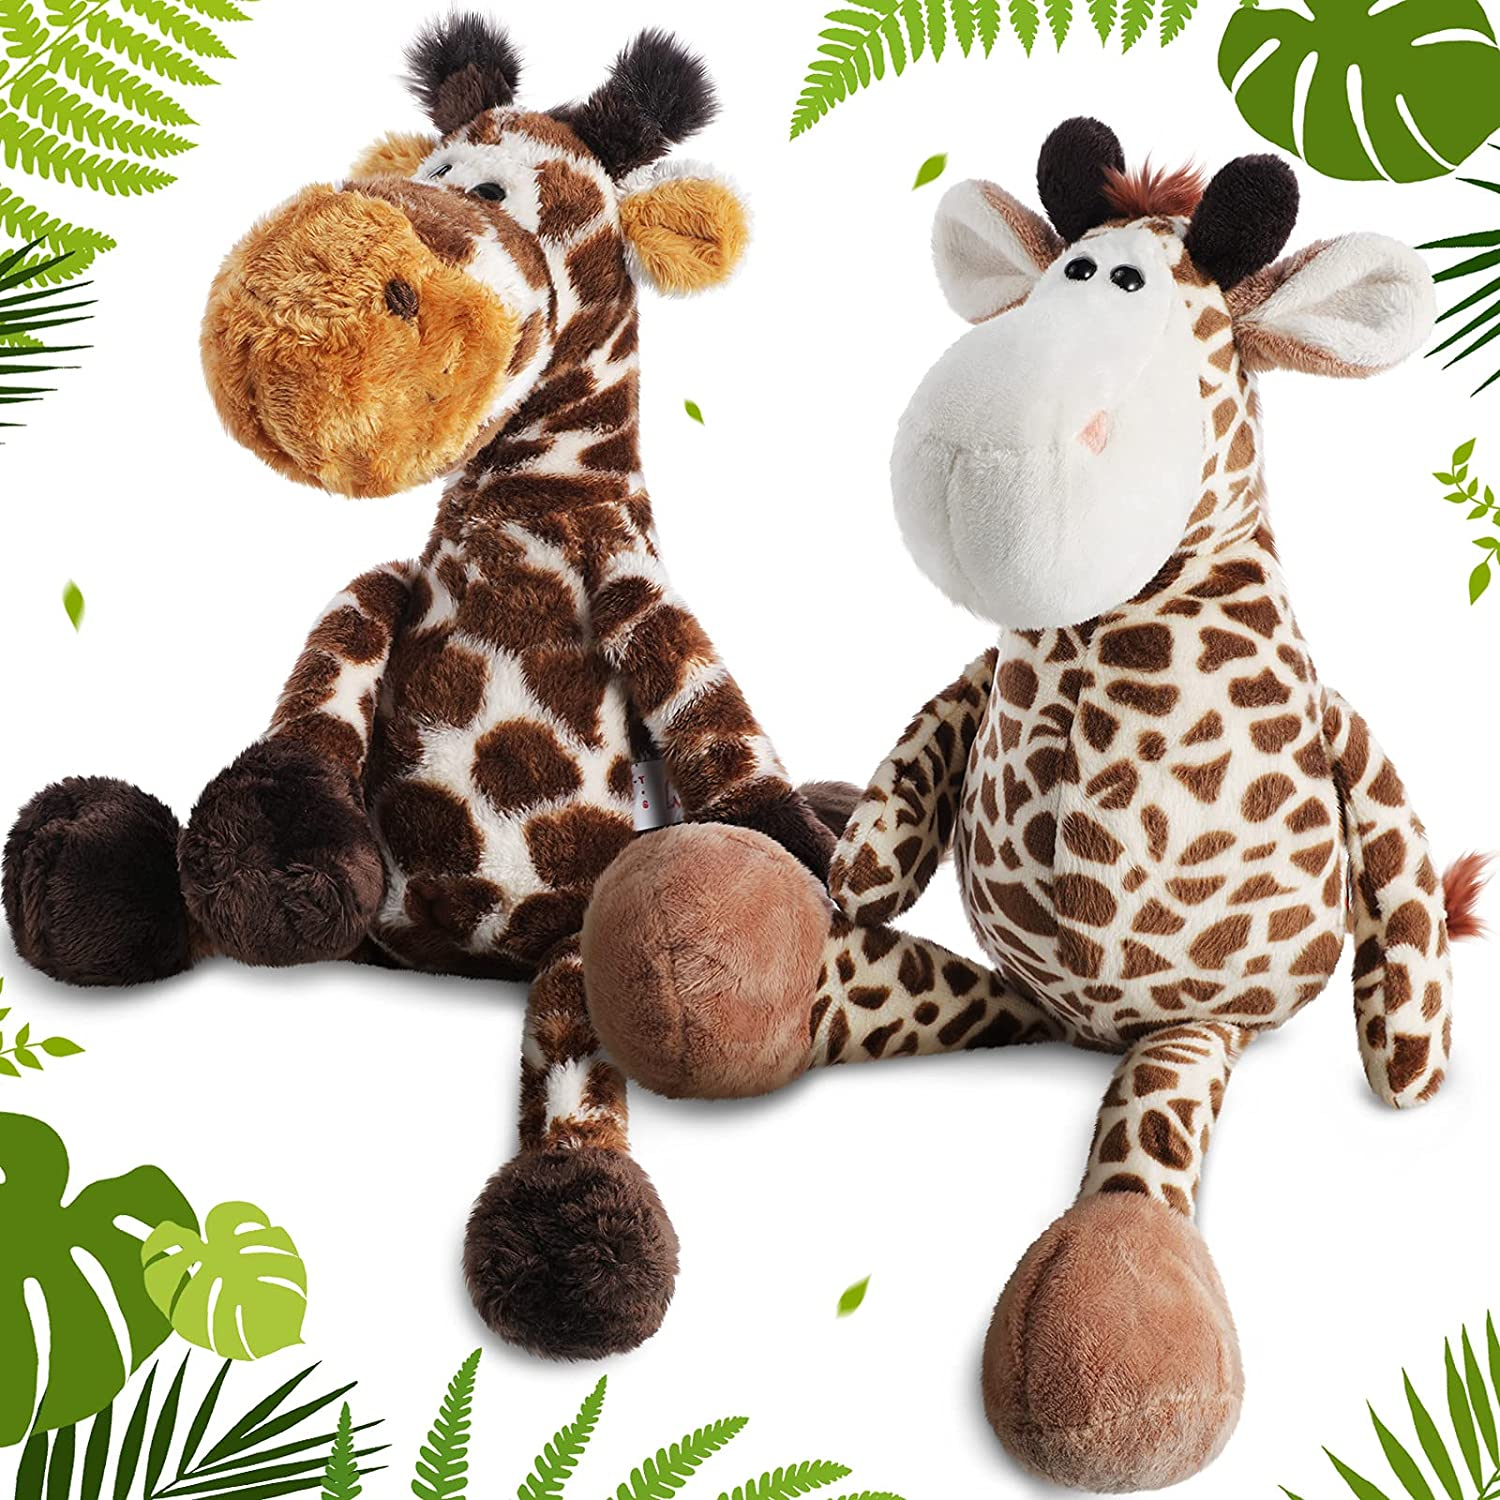 2 Pieces Forest Animals Giraffe Plush Toy 12 Inch Giraffe Plush Stuffed Animals Cute Soft Plush Giraffe Stuffed Toy for Birthday Thanksgiving Valentine's Day Office Home